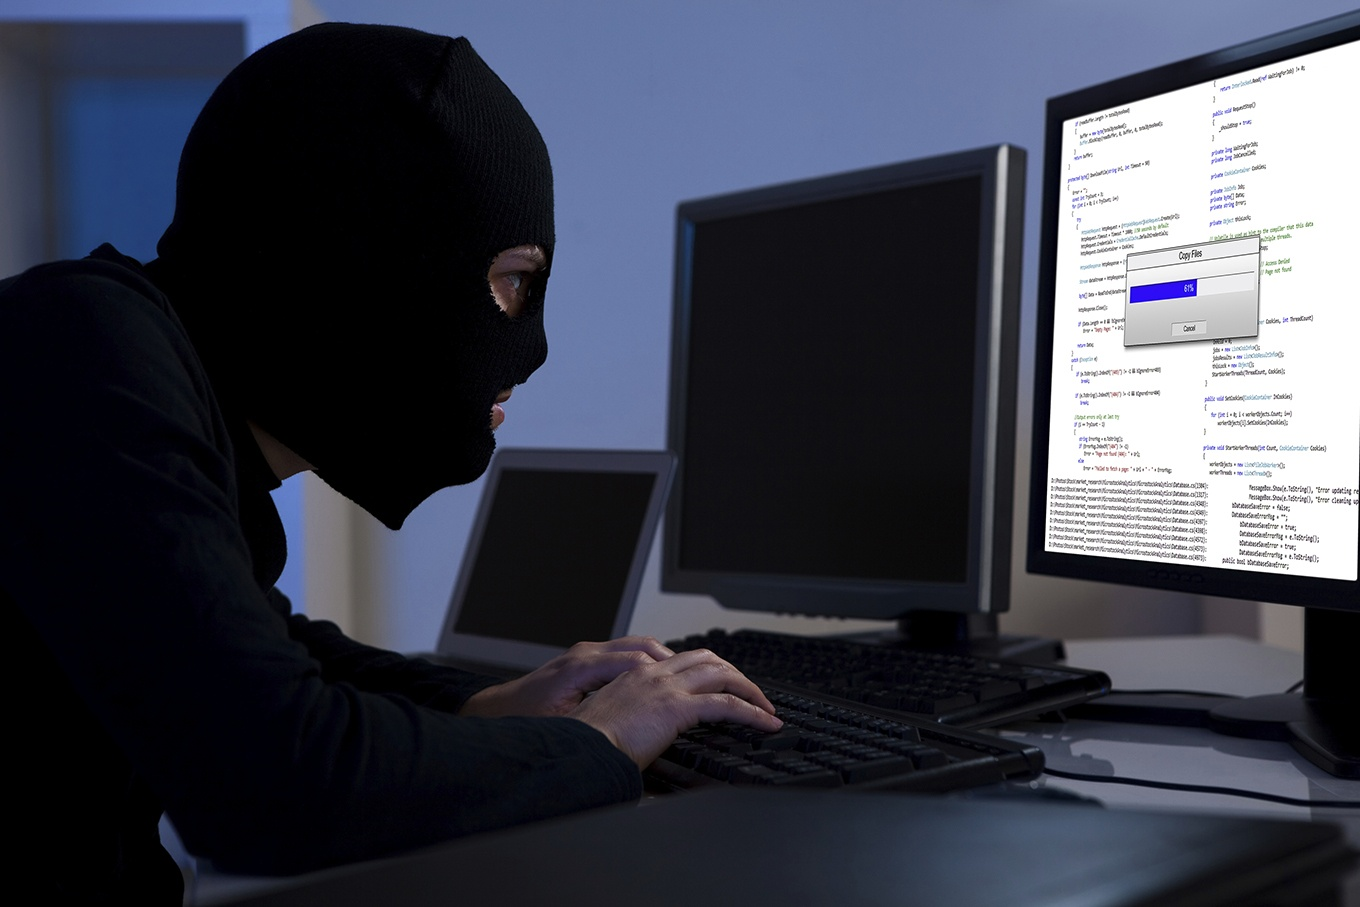 How You Can Defend Yourself From Identity Theft